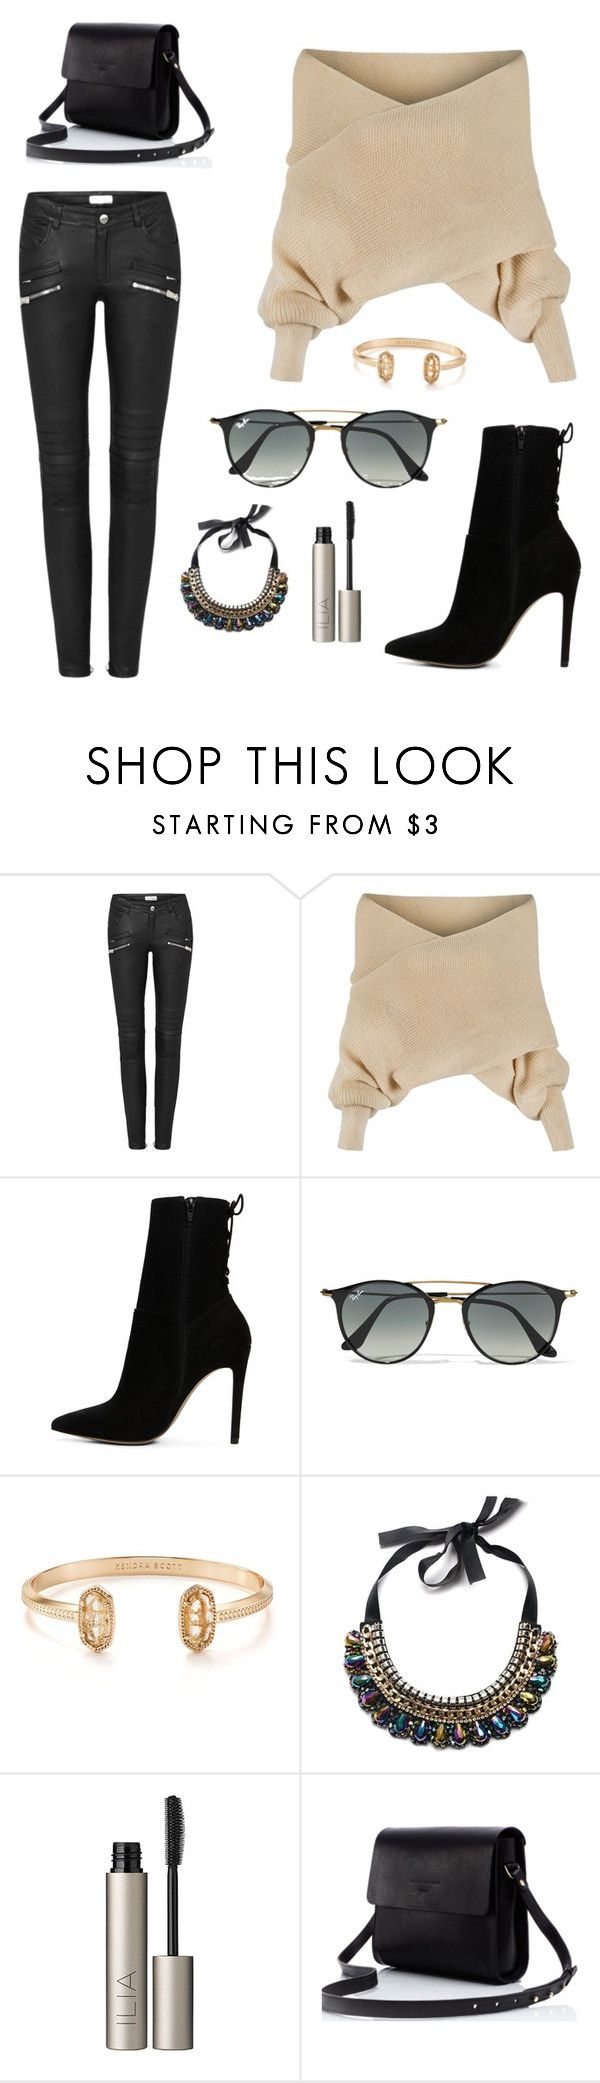 """""""Untitled #35"""" by kylie-cardinali on Polyvore featuring WithChic, ALDO, Ray-Ban, Kendra Scott and Ilia"""